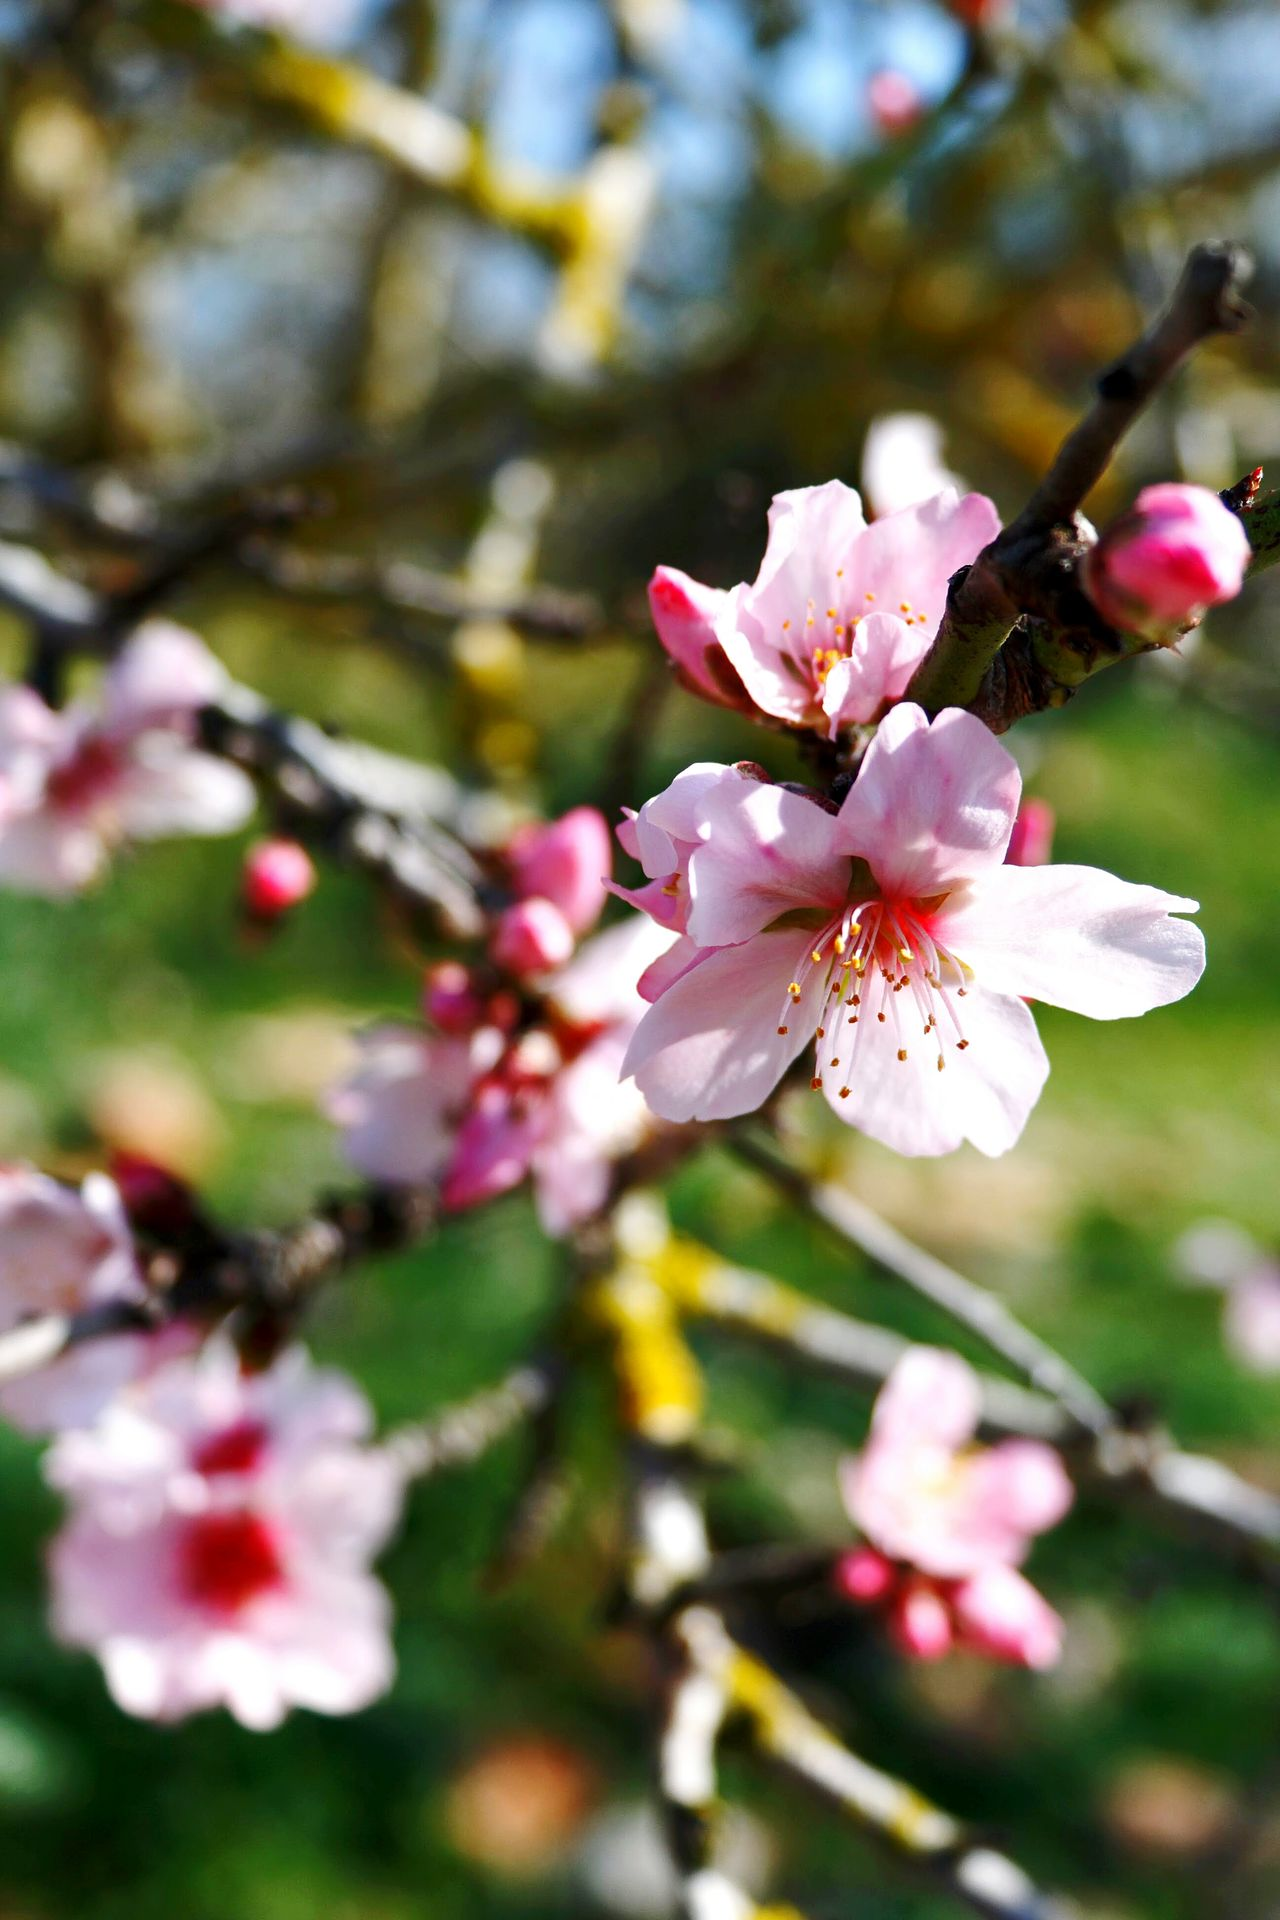 Almond Blossom Nature Growth Blossom Springtime Beauty In Nature Almond Tree Freshness Pink Color No People Fragility Branch Plant Spring Blossoms Spring Has Arrived Blossoms  Beliebte Fotos Walking Around Taking Pictures EyeEm Nature Lover Check This Out Canonphotography Outdoors